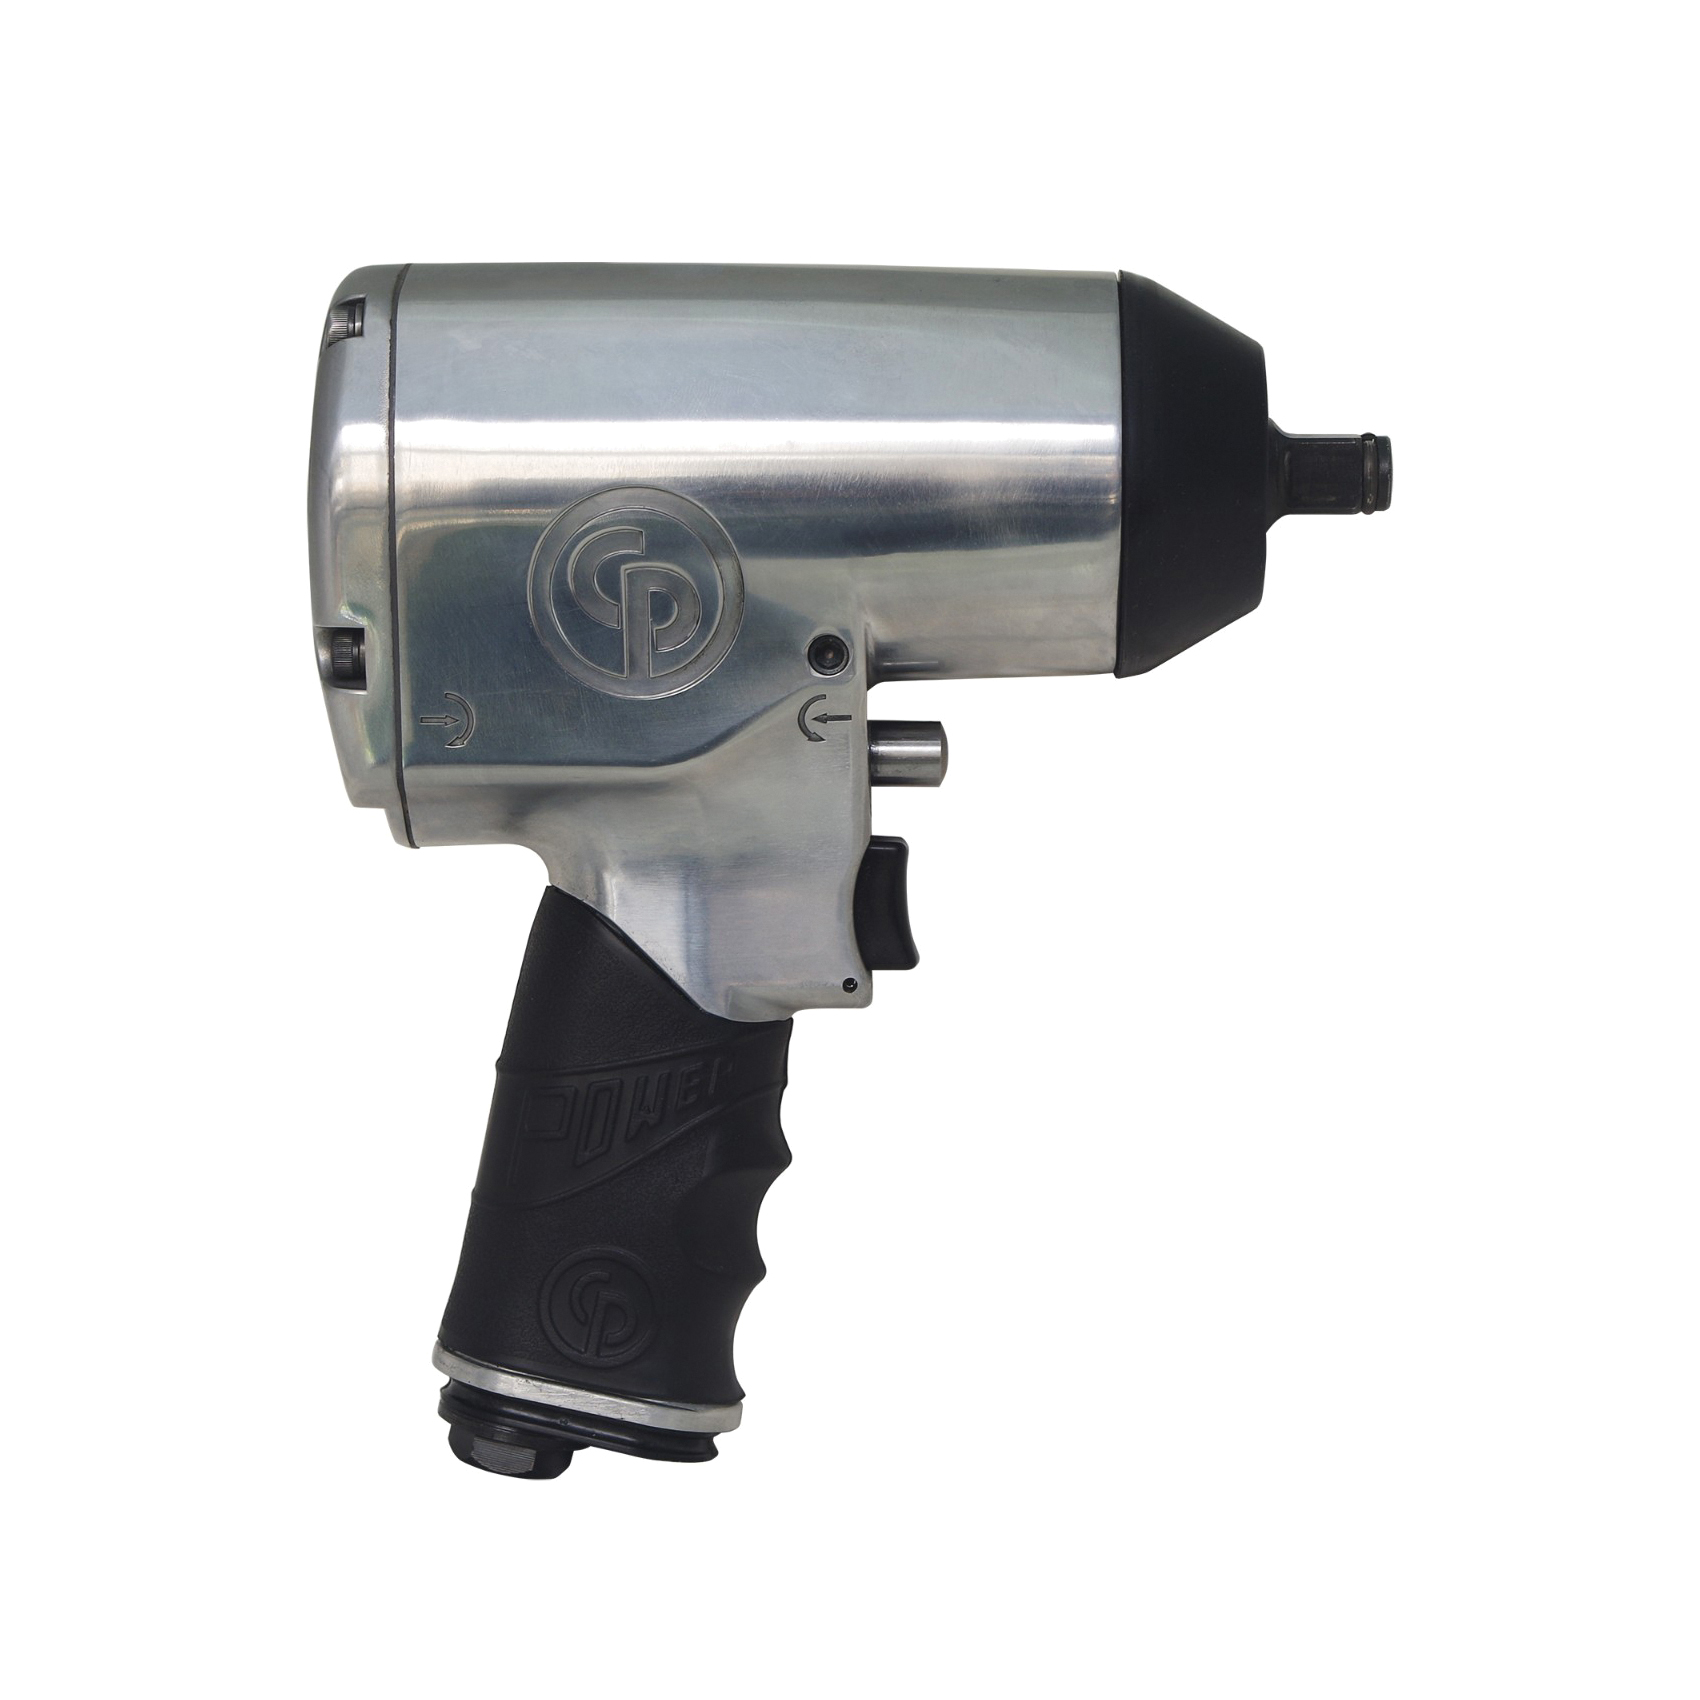 CP T024587 Impact Wrench, 1/2 in Drive, 68 to 610 N-m Forward/ 827 N-m Reverse Torque, 22 cfm Air Flow, 7 in OAL